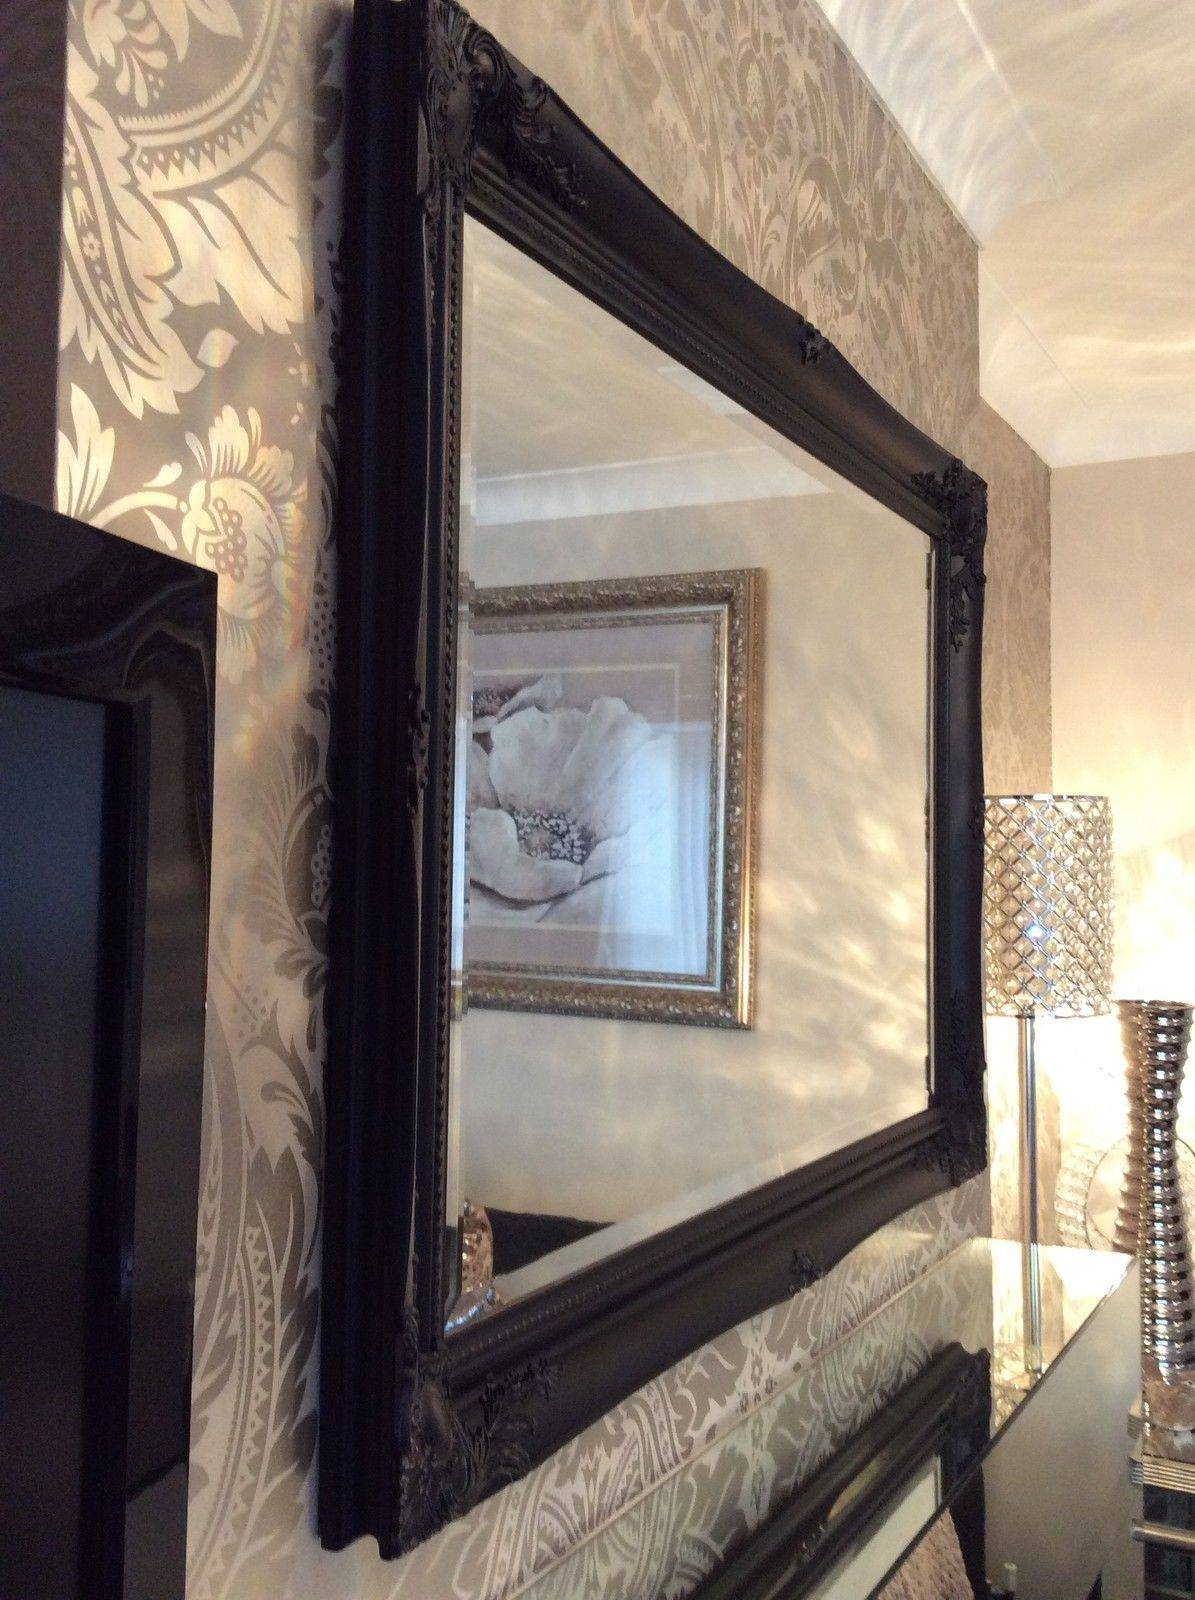 Black Shabby Chic Framed Ornate Overmantle Wall Mirror - Range Of pertaining to Black Large Mirrors (Image 5 of 15)